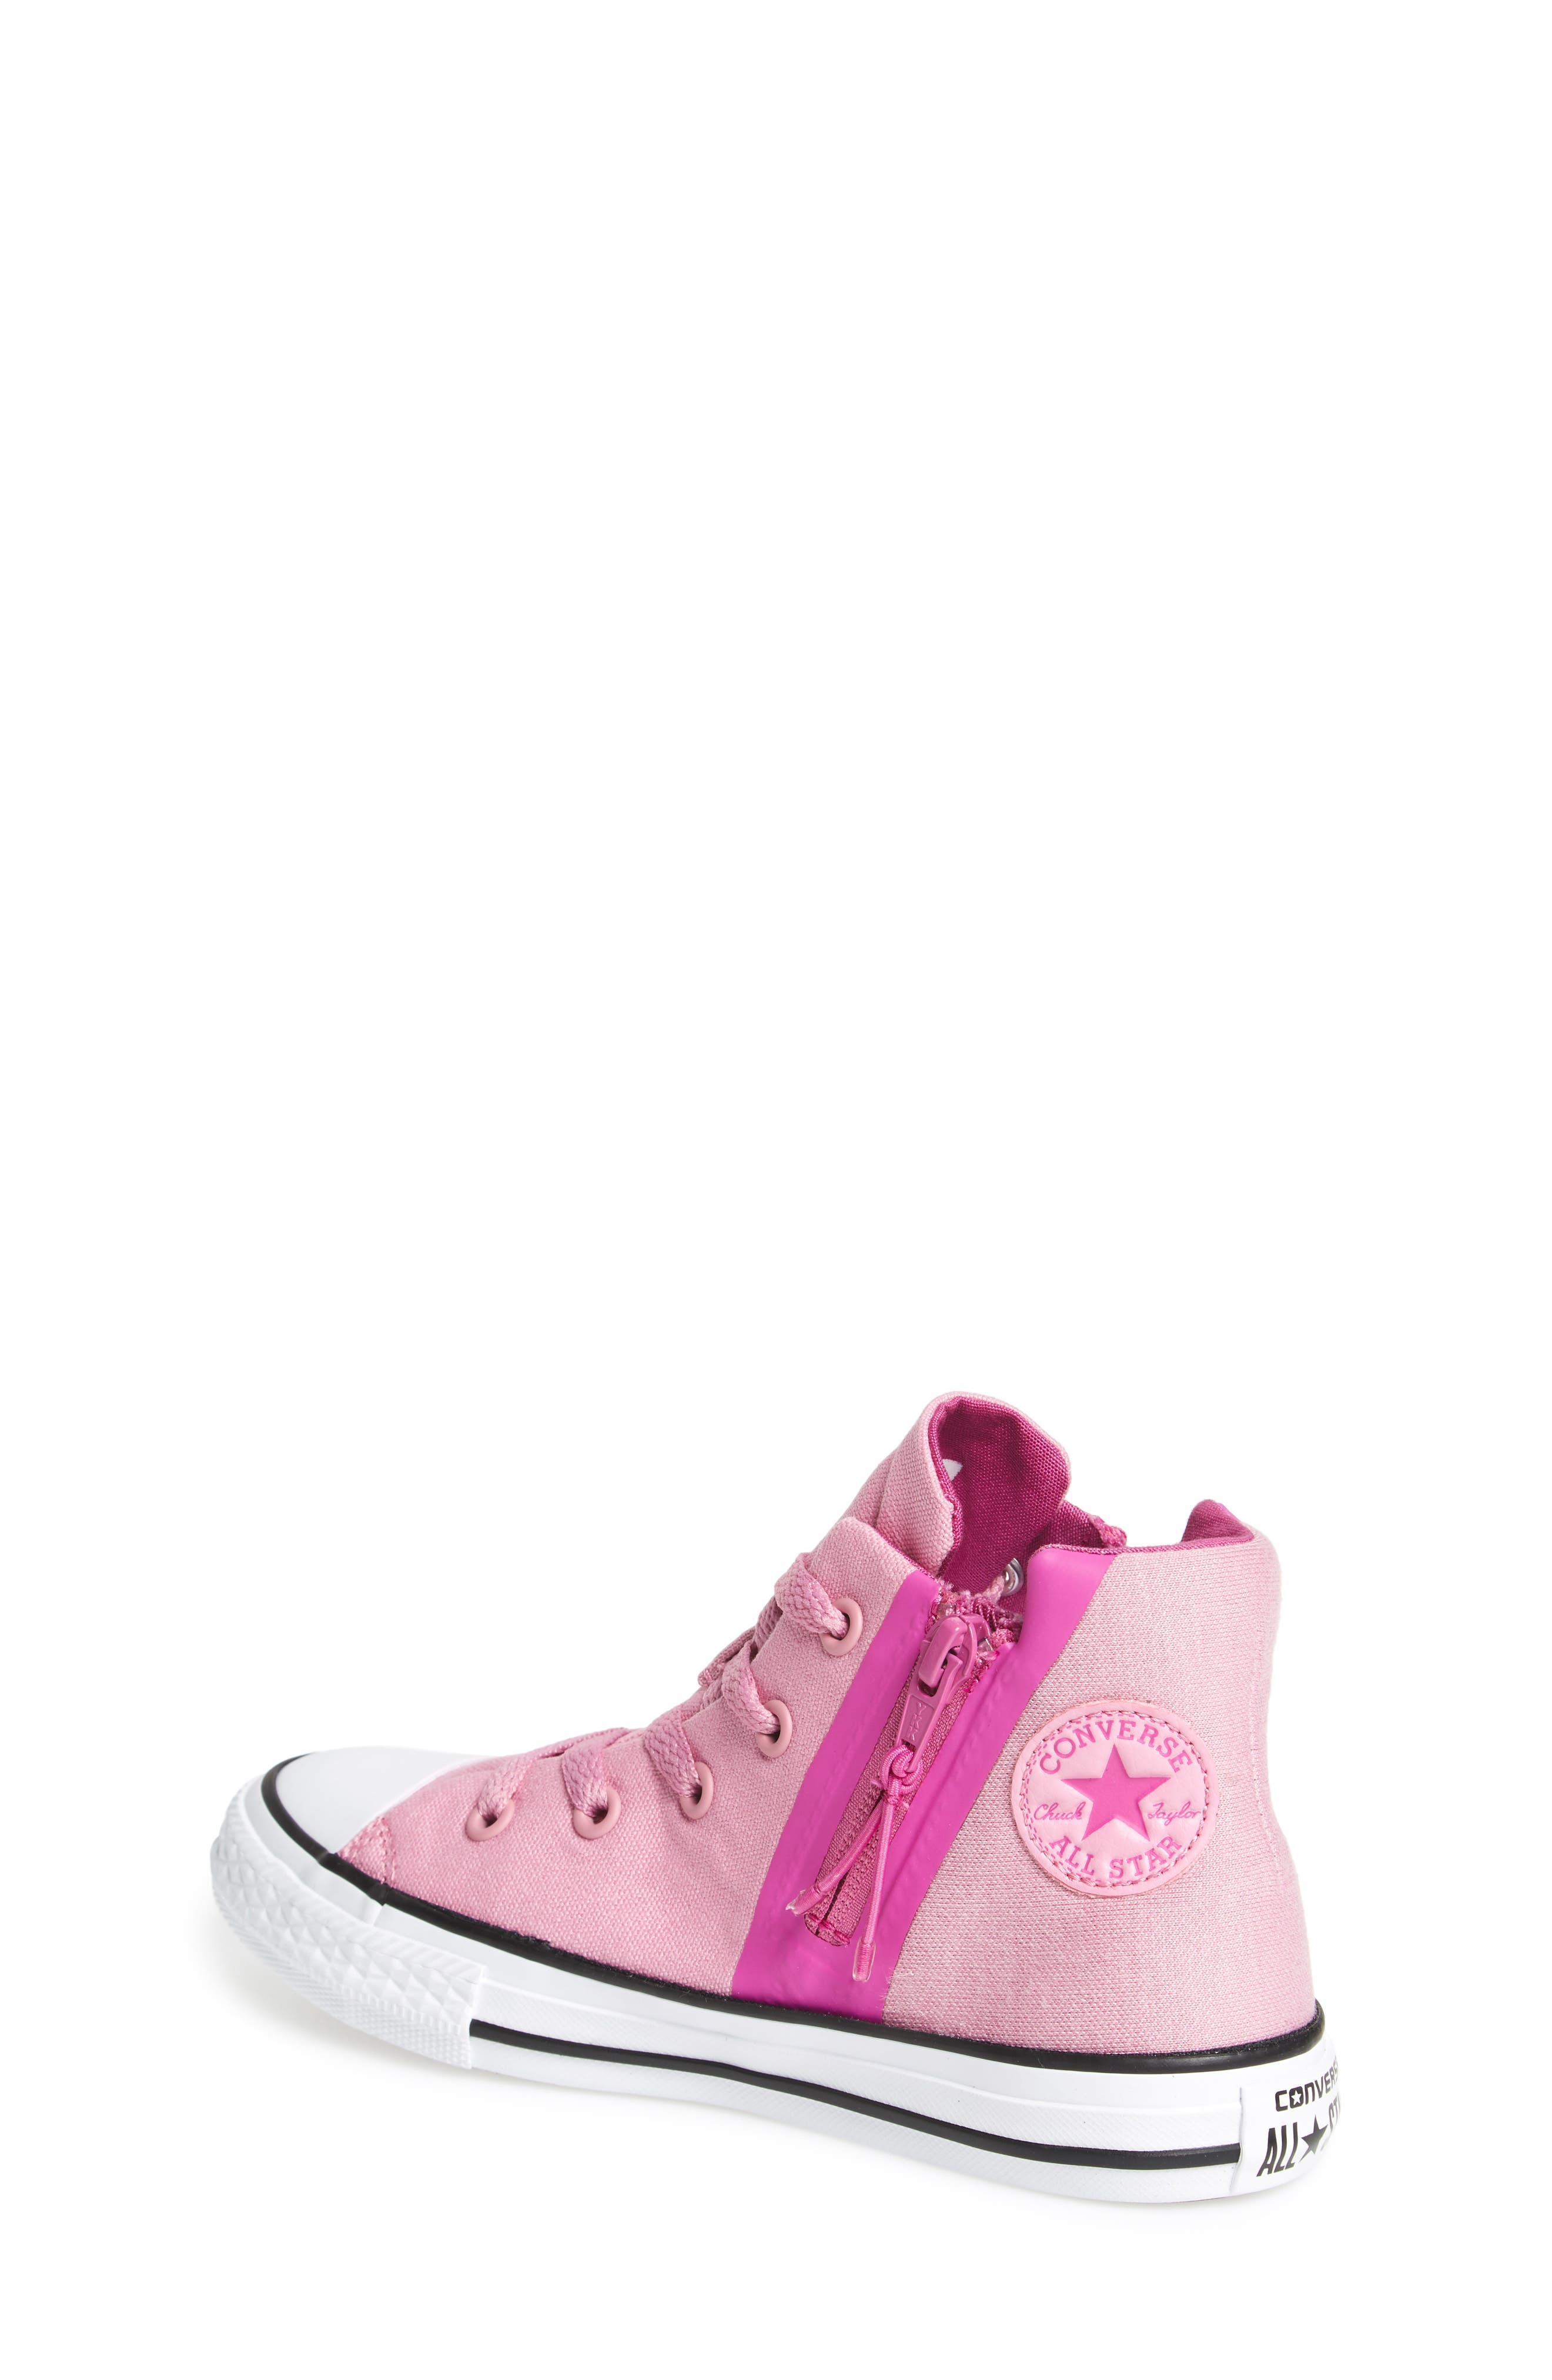 Chuck Taylor<sup>®</sup> All Star<sup>®</sup> Sport Zip High Top Sneaker,                             Alternate thumbnail 2, color,